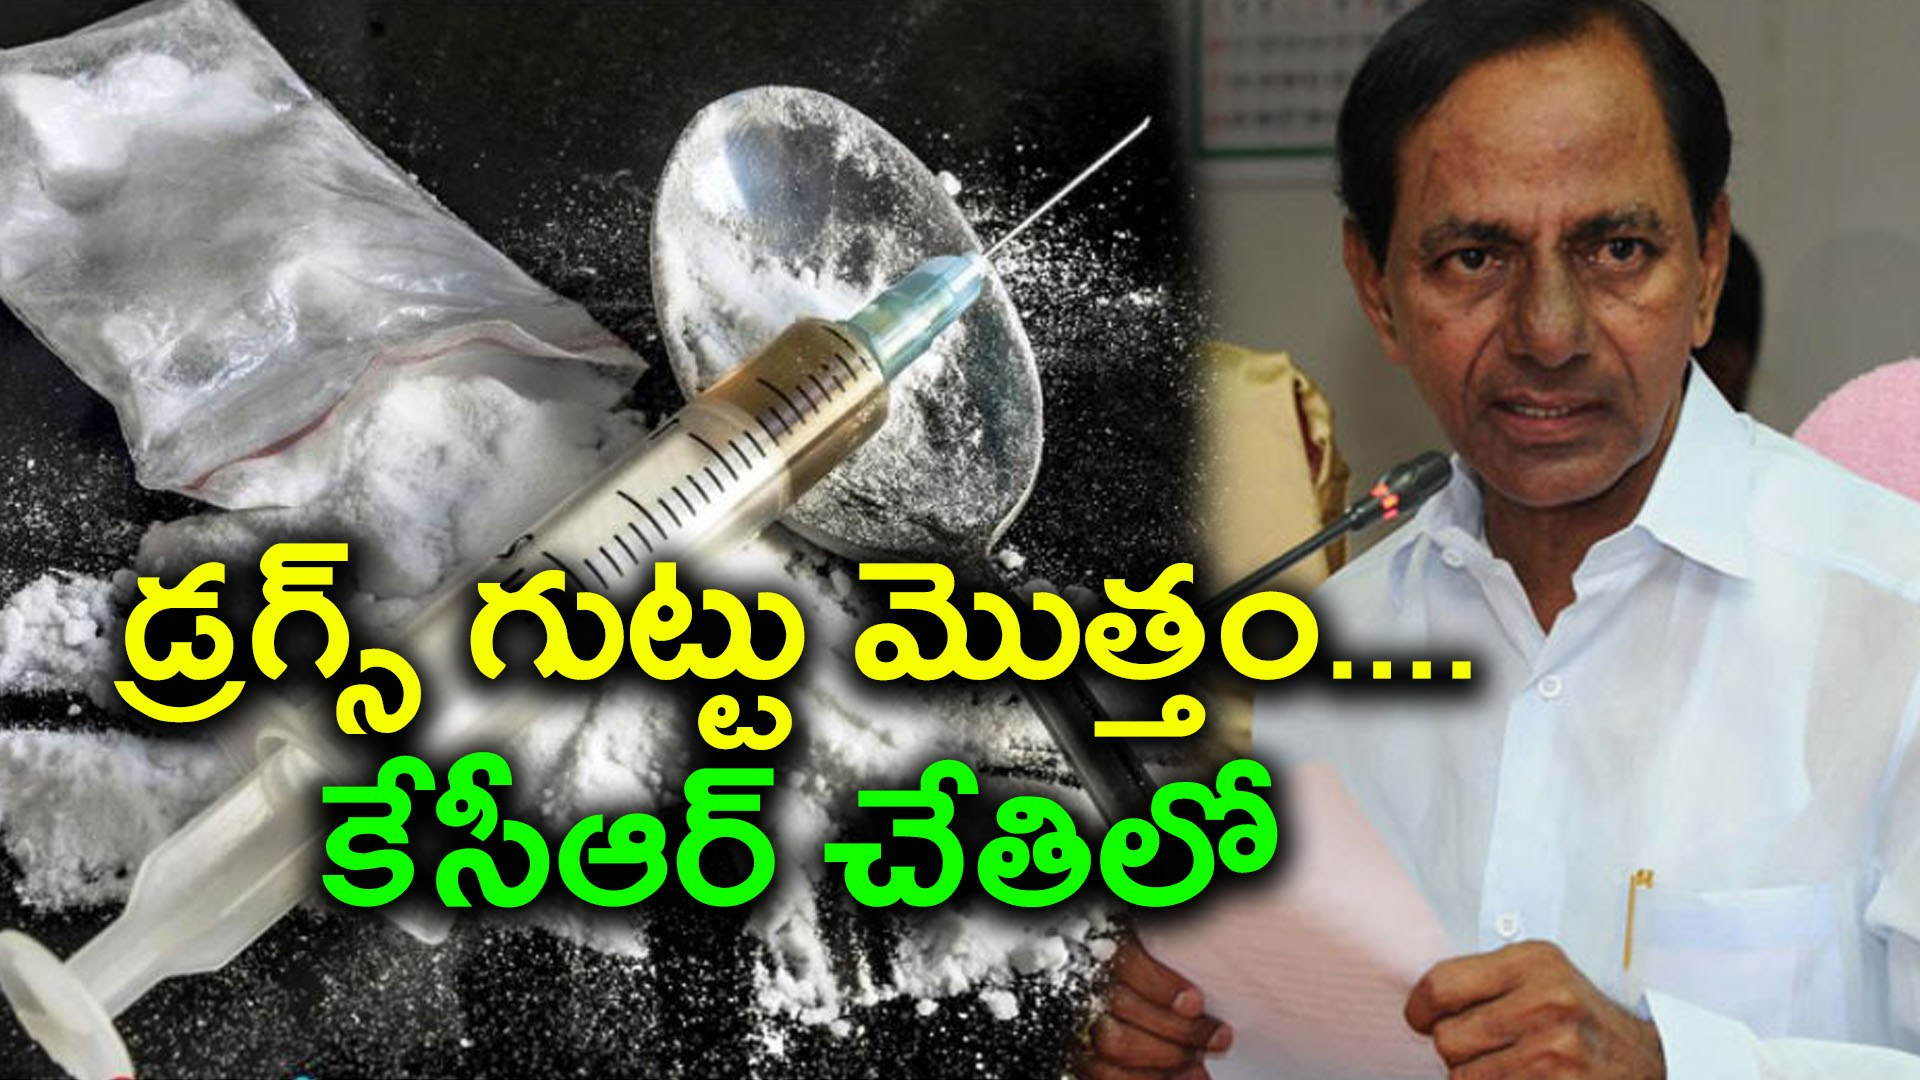 CM KCR Review Meeting On Tollywood Drug Scandal - Oneindia Telugu